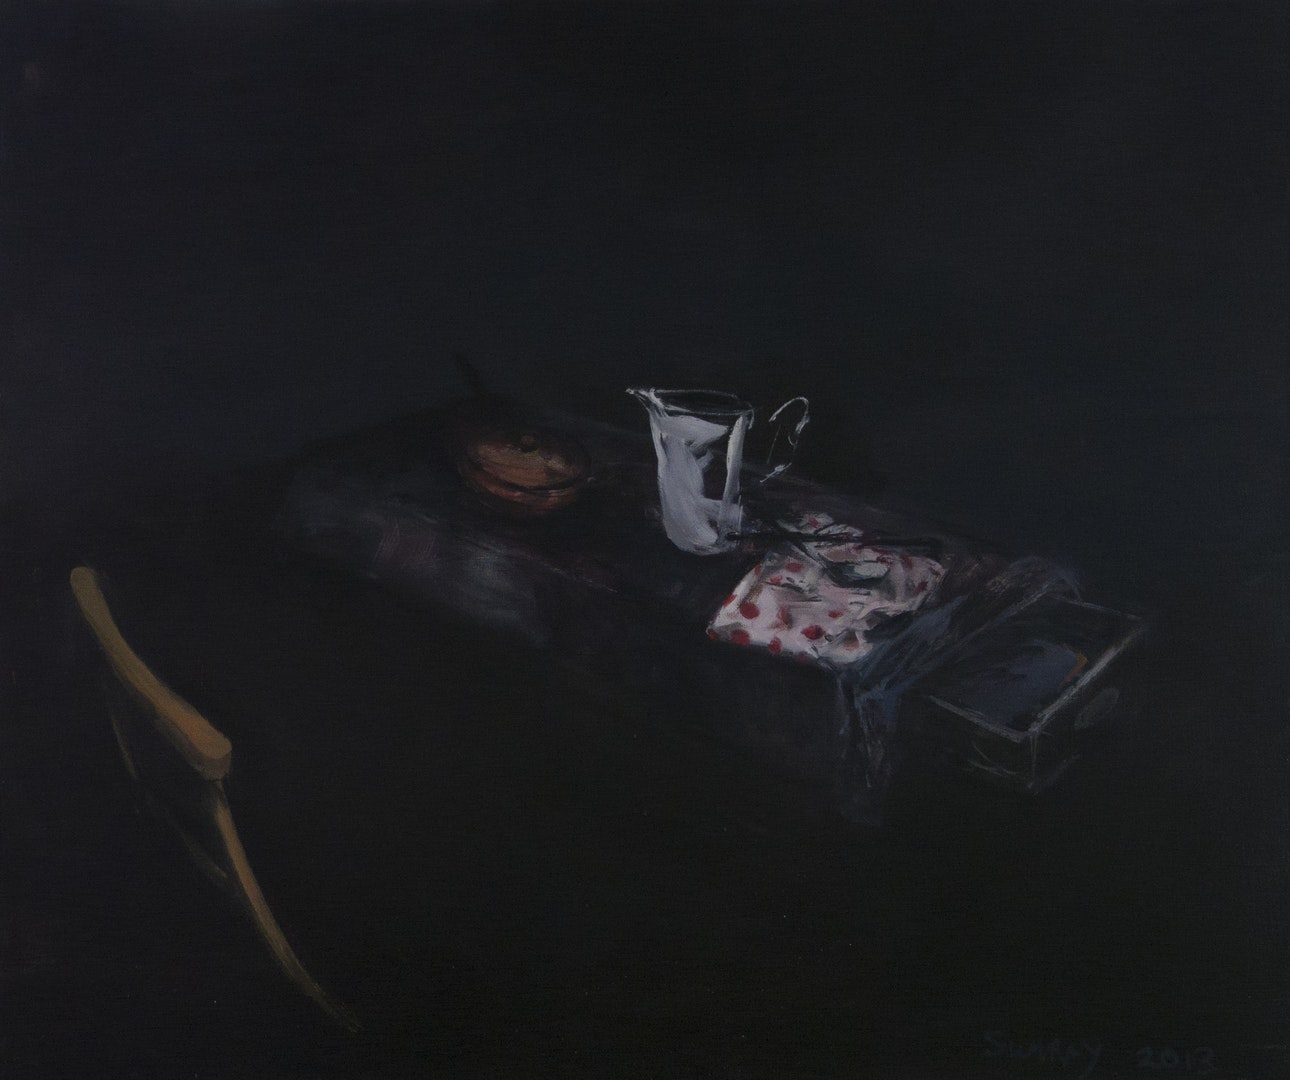 Jason Sumray  Jug with Serviette & Open Drawer I  Oil on canvas, 105 x 122 x 2 cm  http://www.jasonsumray.com